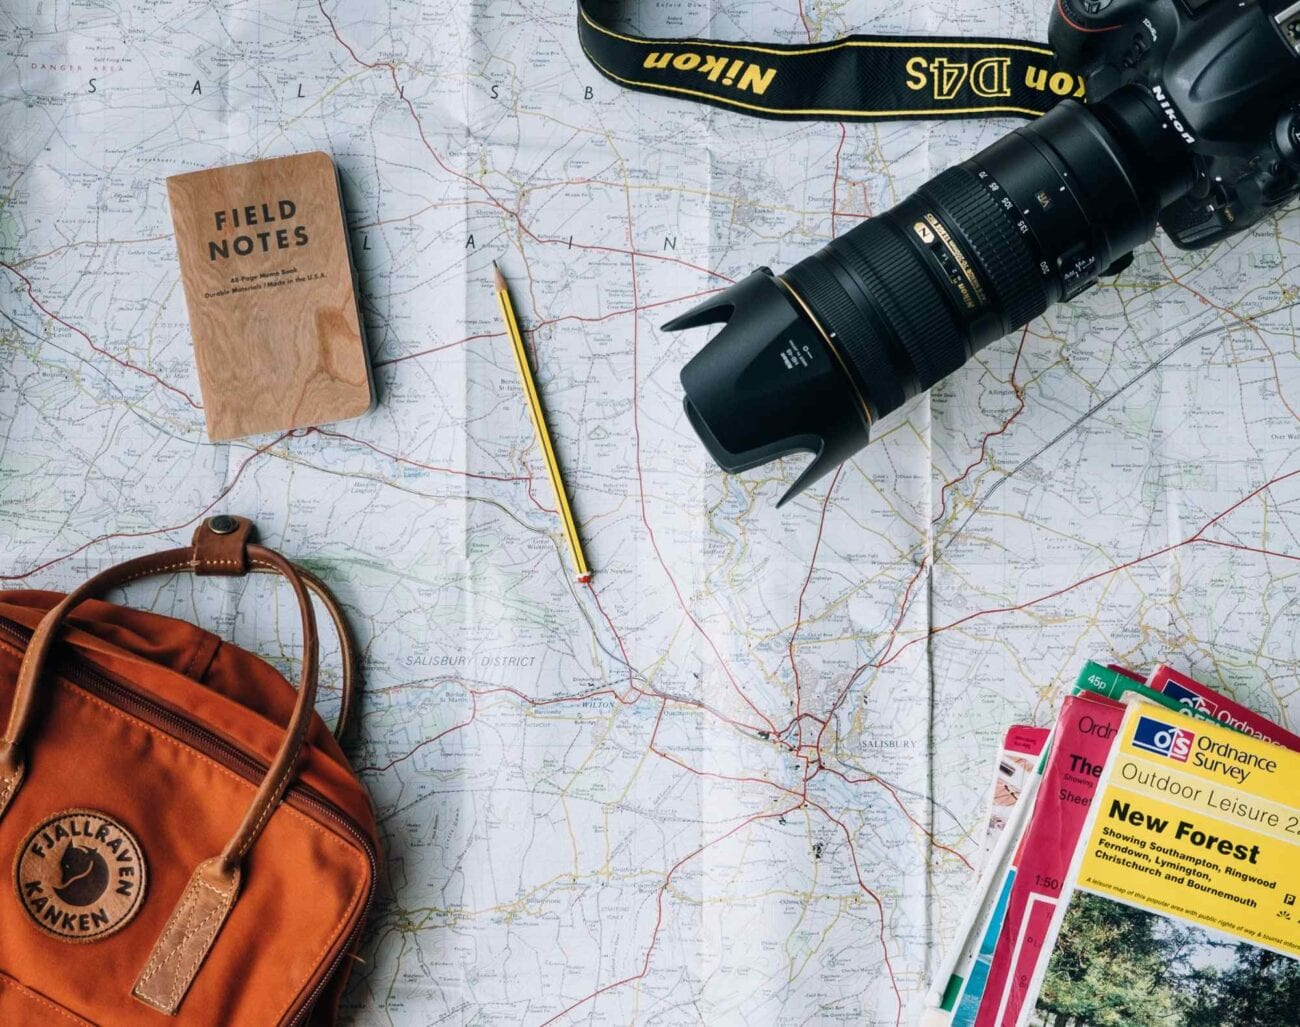 Journalism can be a tough job. Here are some crucial tips on how to to stay safe as a traveling journalist.